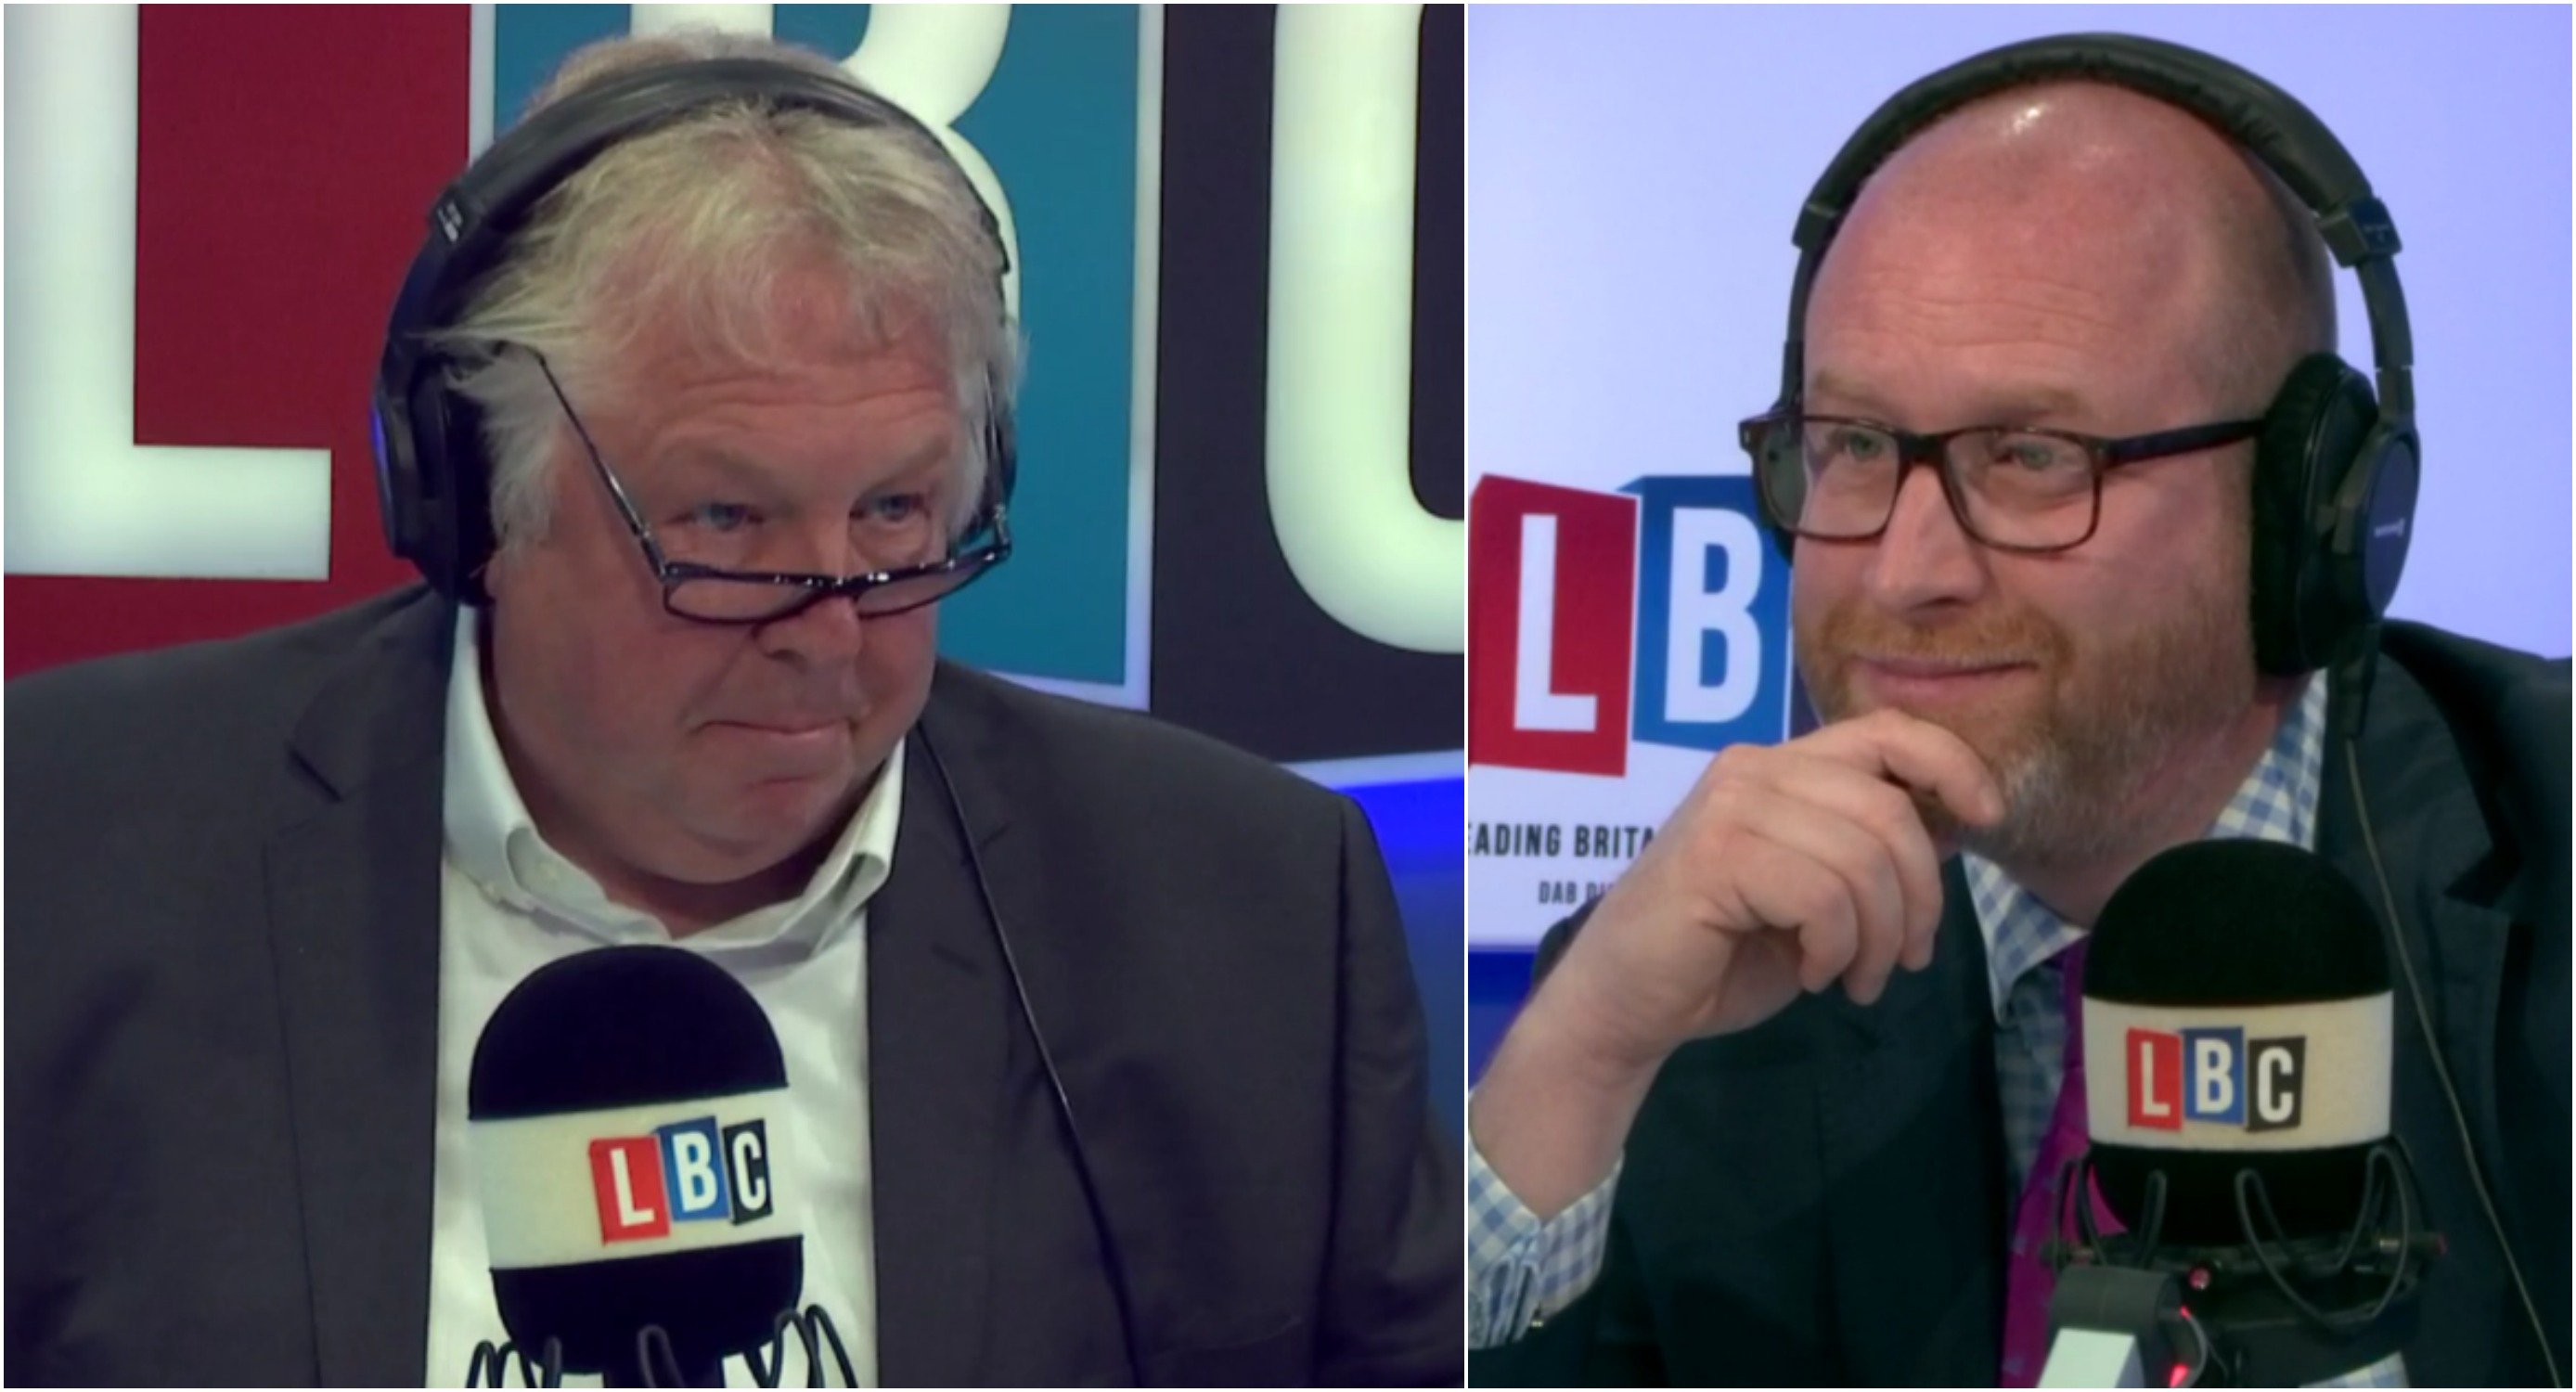 Nick Ferrari Paul Nuttall